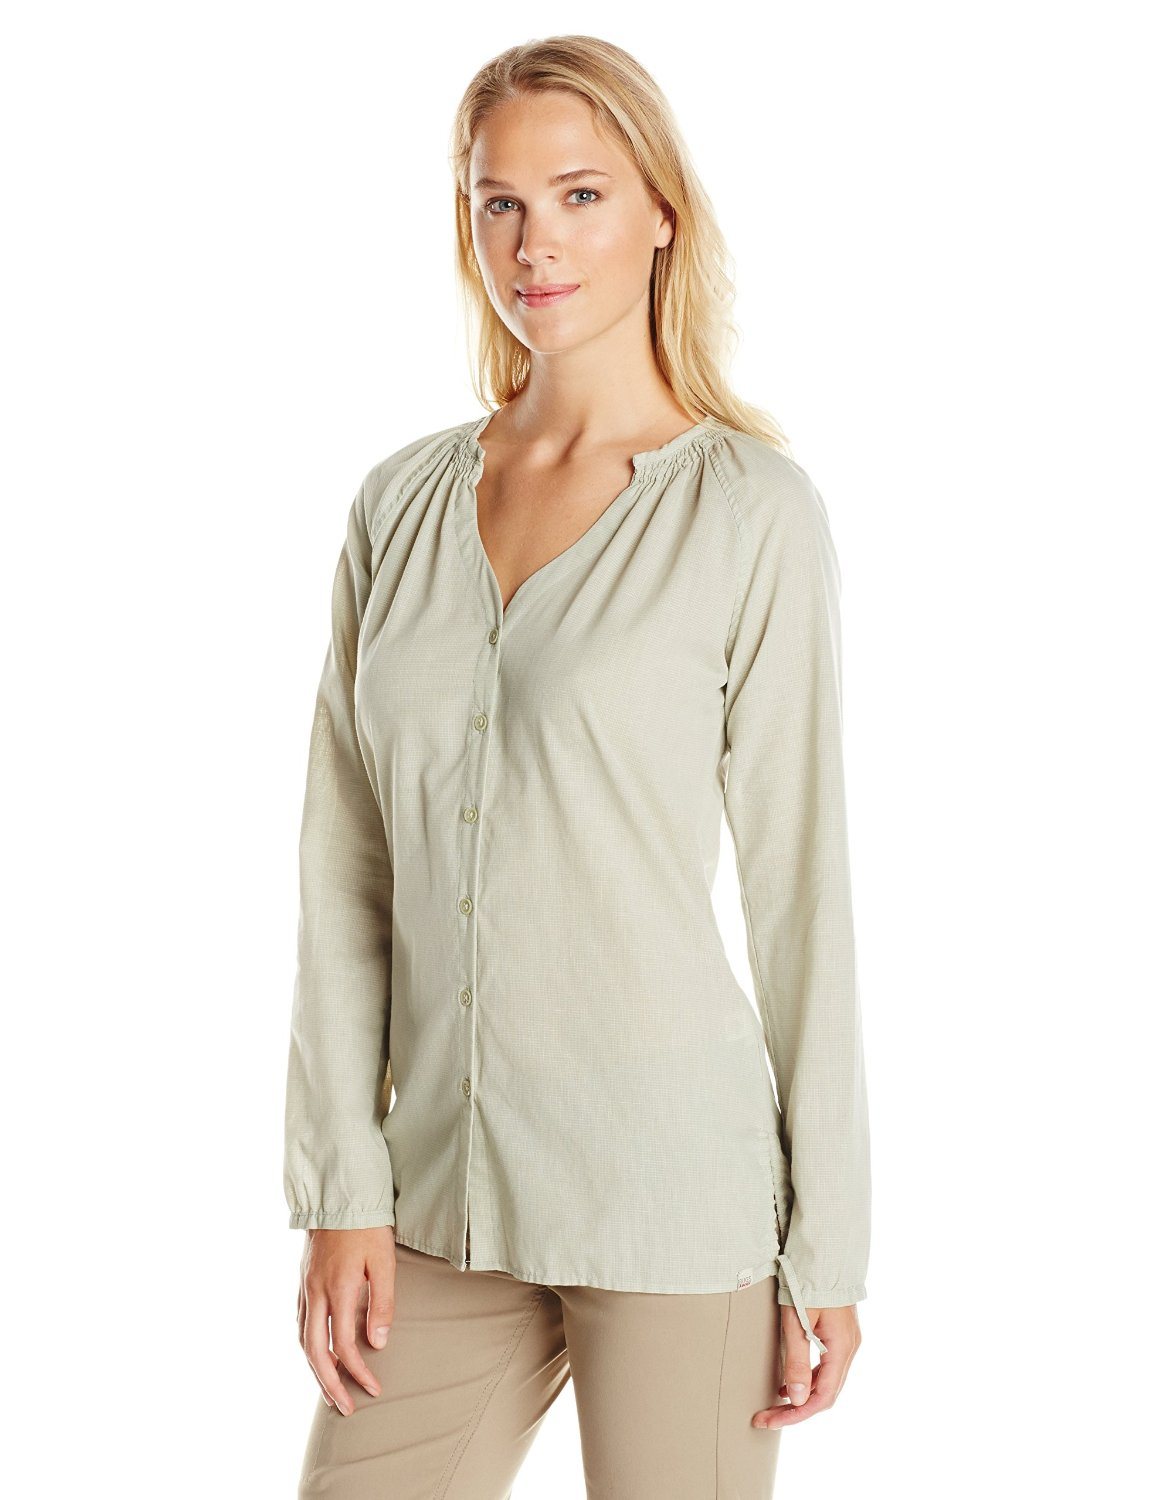 mosquito-repellent-clothes-tunic